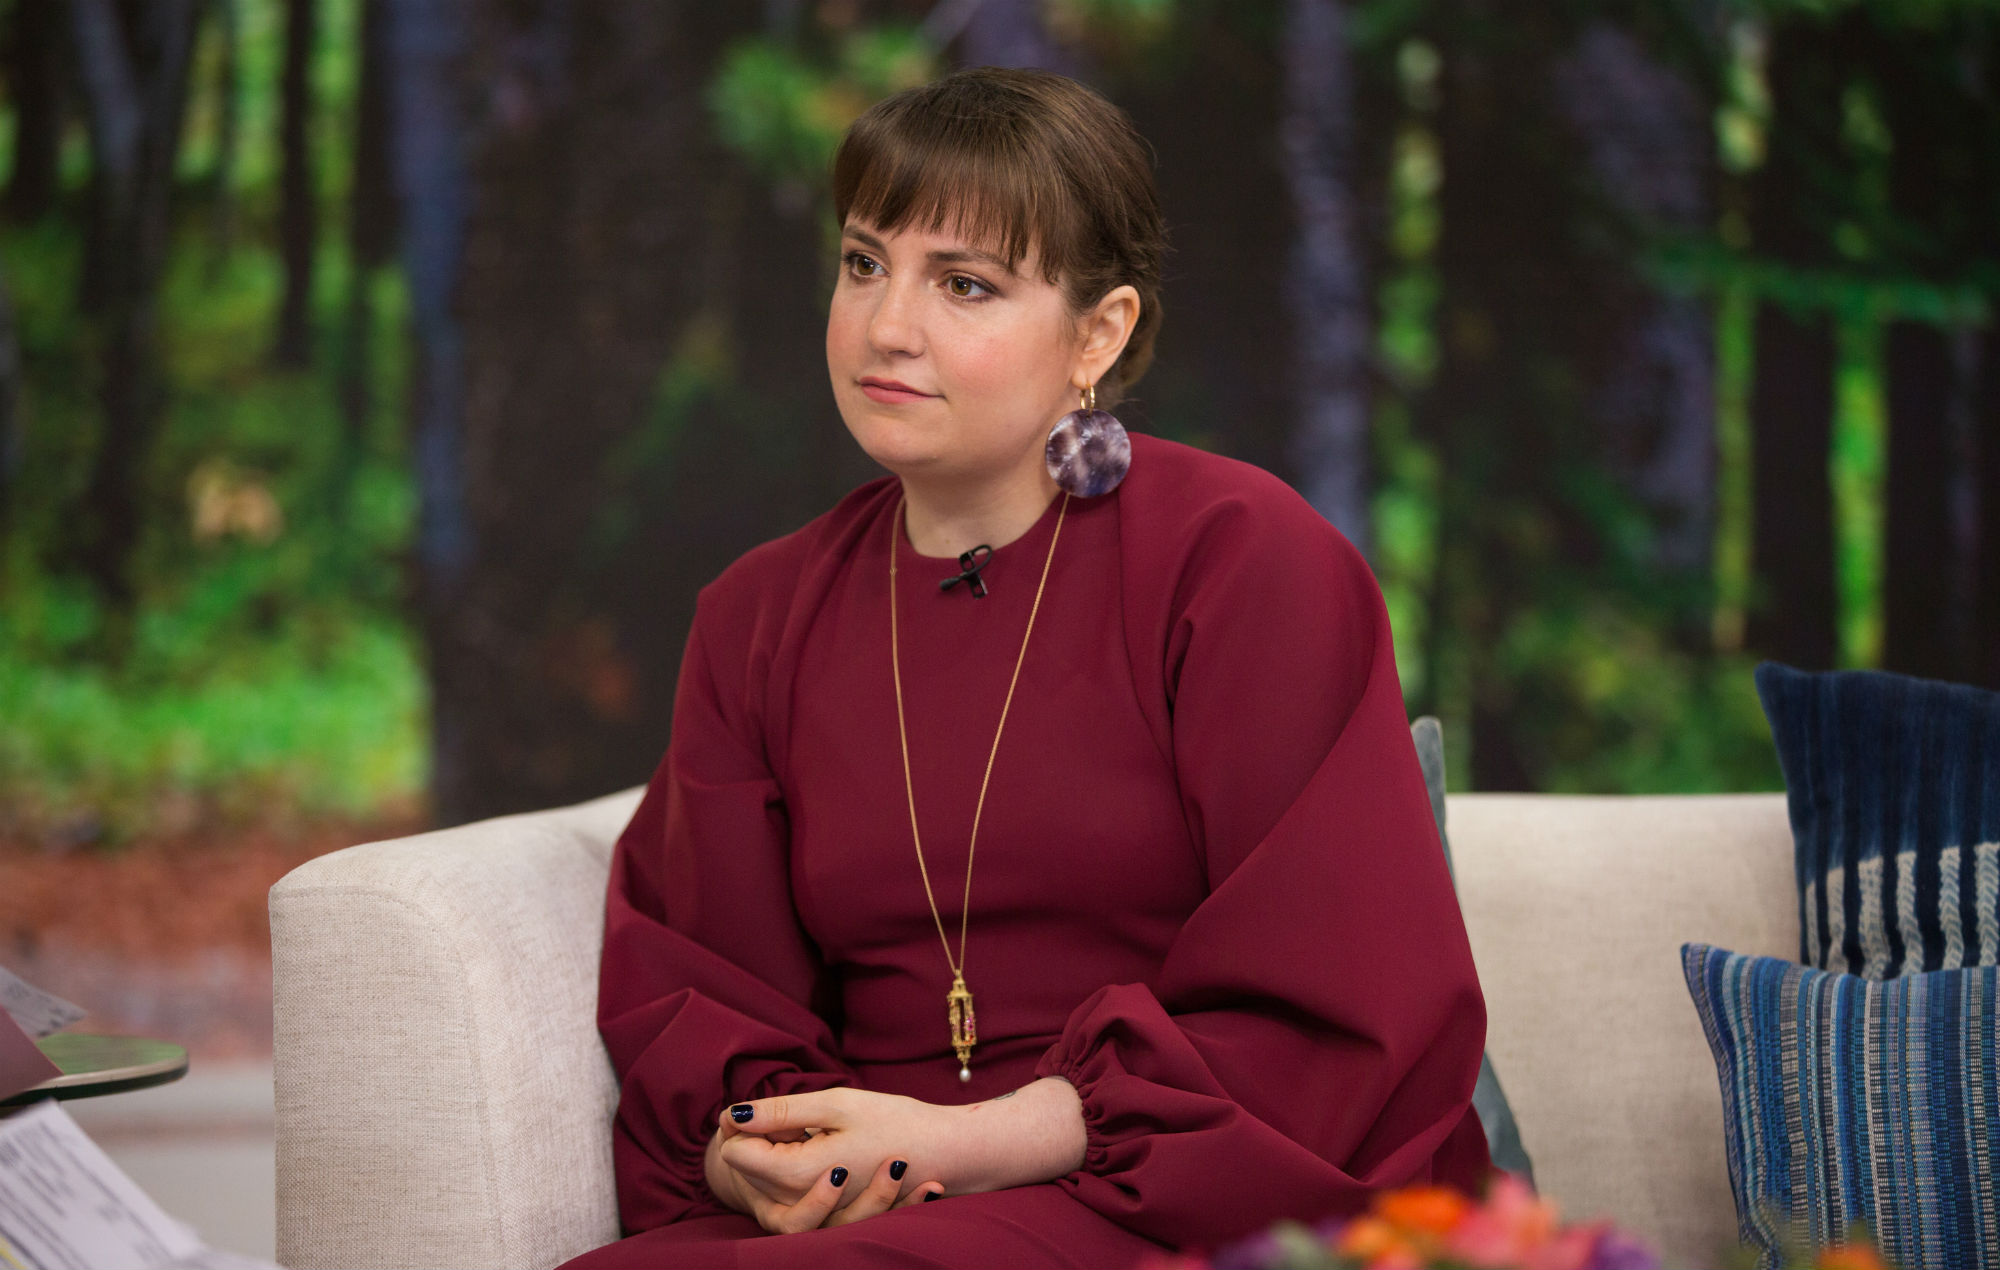 Gettyimages Lena Dunham Issues Apology Aurora Perrineau Overual